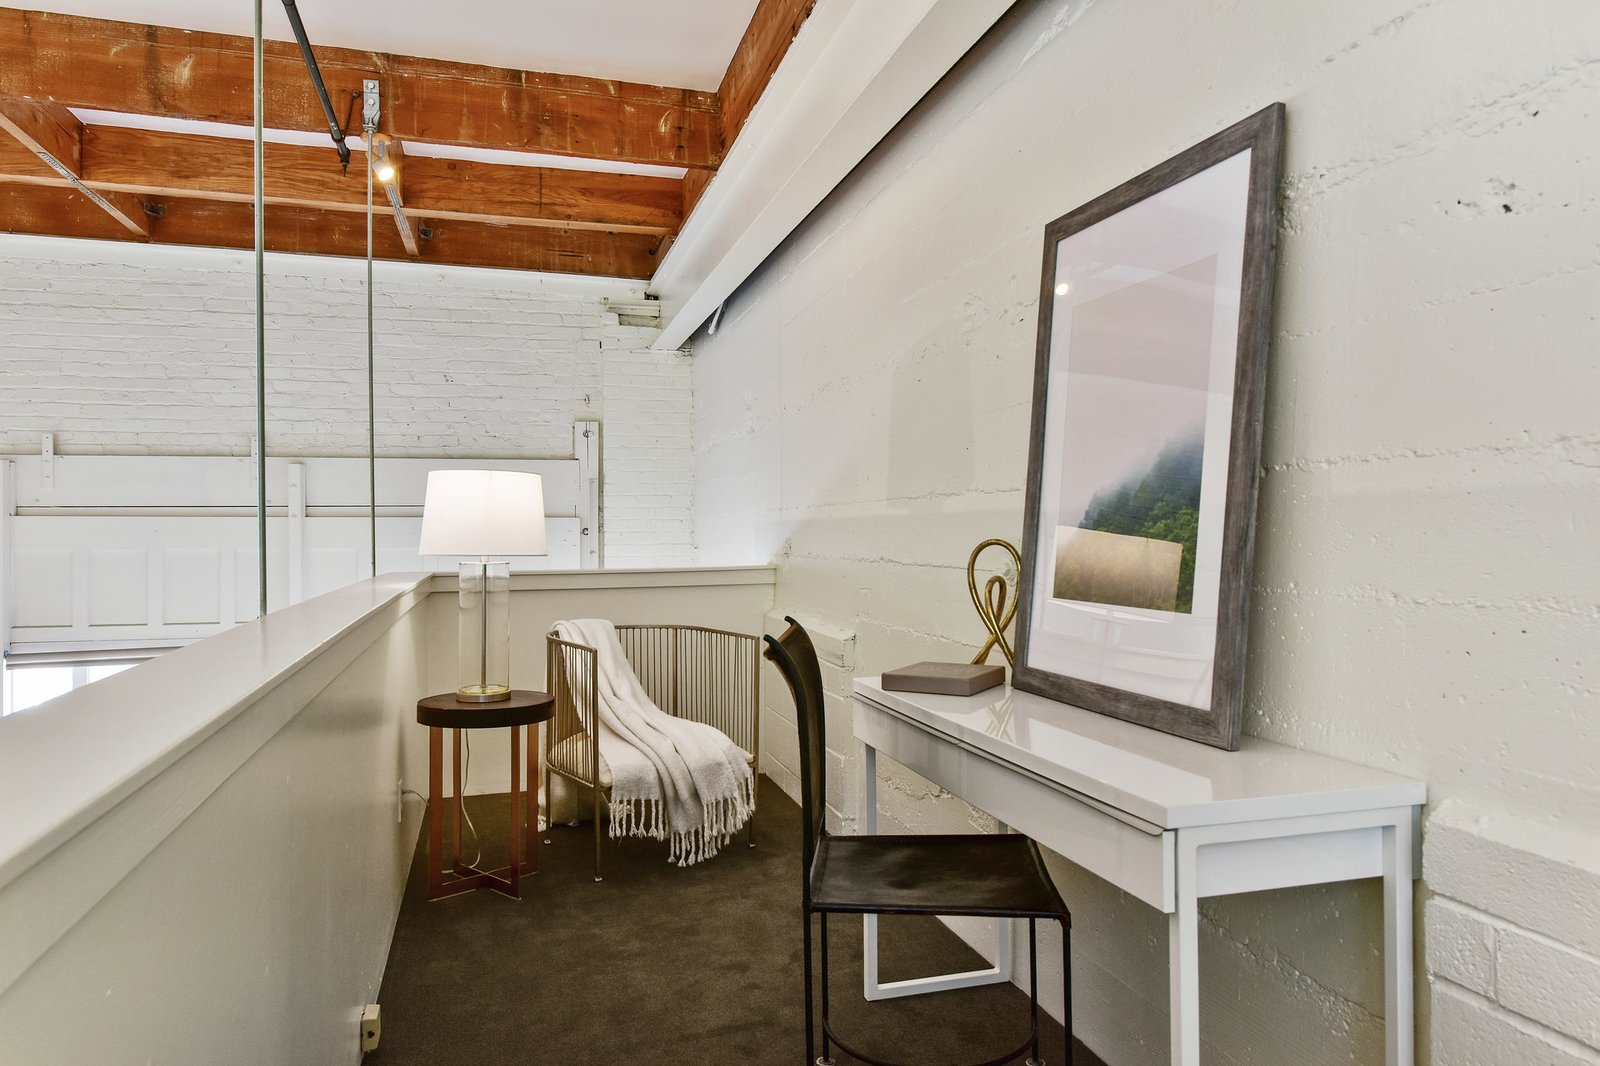 A cozy balcony area off the bedroom can serve as a quiet reading nook or workspace.  Photo 8 of 9 in A Converted Warehouse Loft in the San Francisco Bay Area Seeks $950K